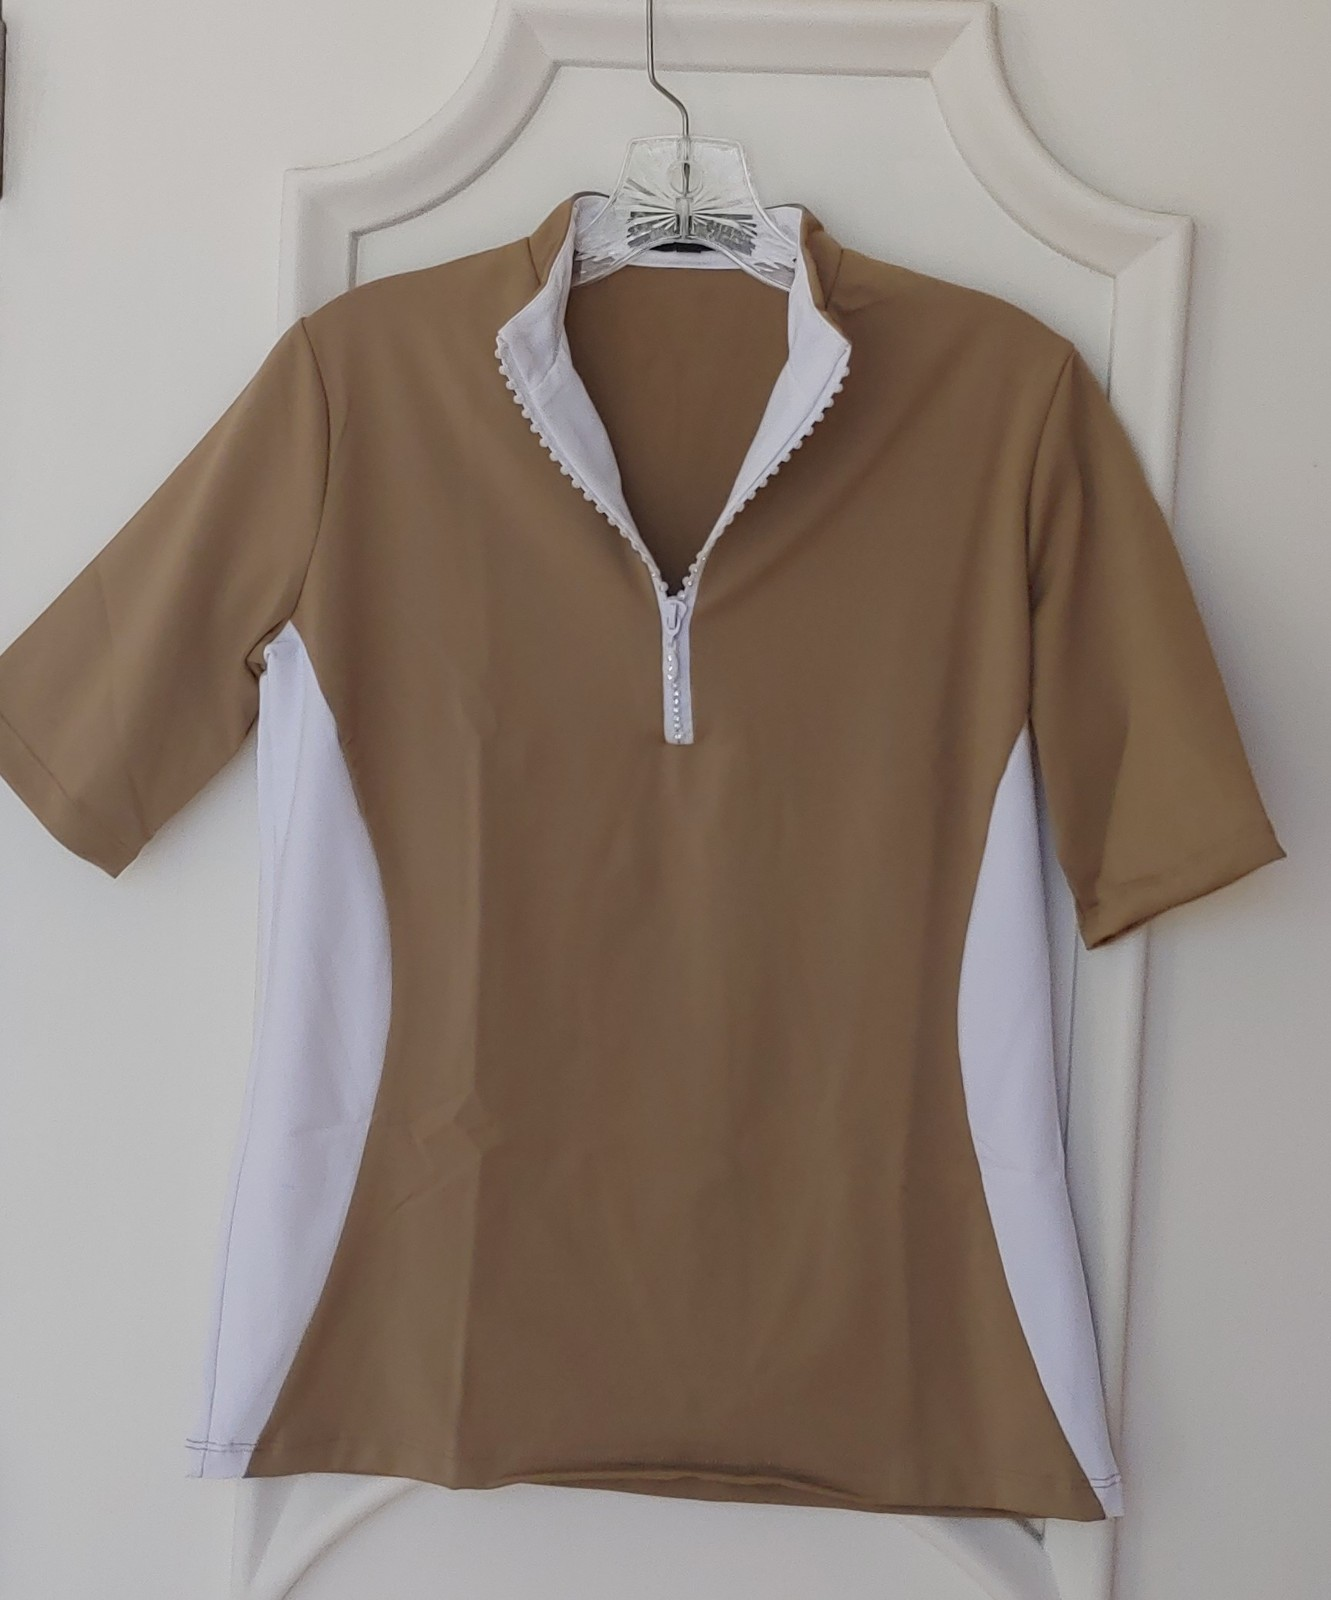 Stylish Women's Golf & Casual Short Sleeve Tan Mock Polo, Rhinestone Zipper